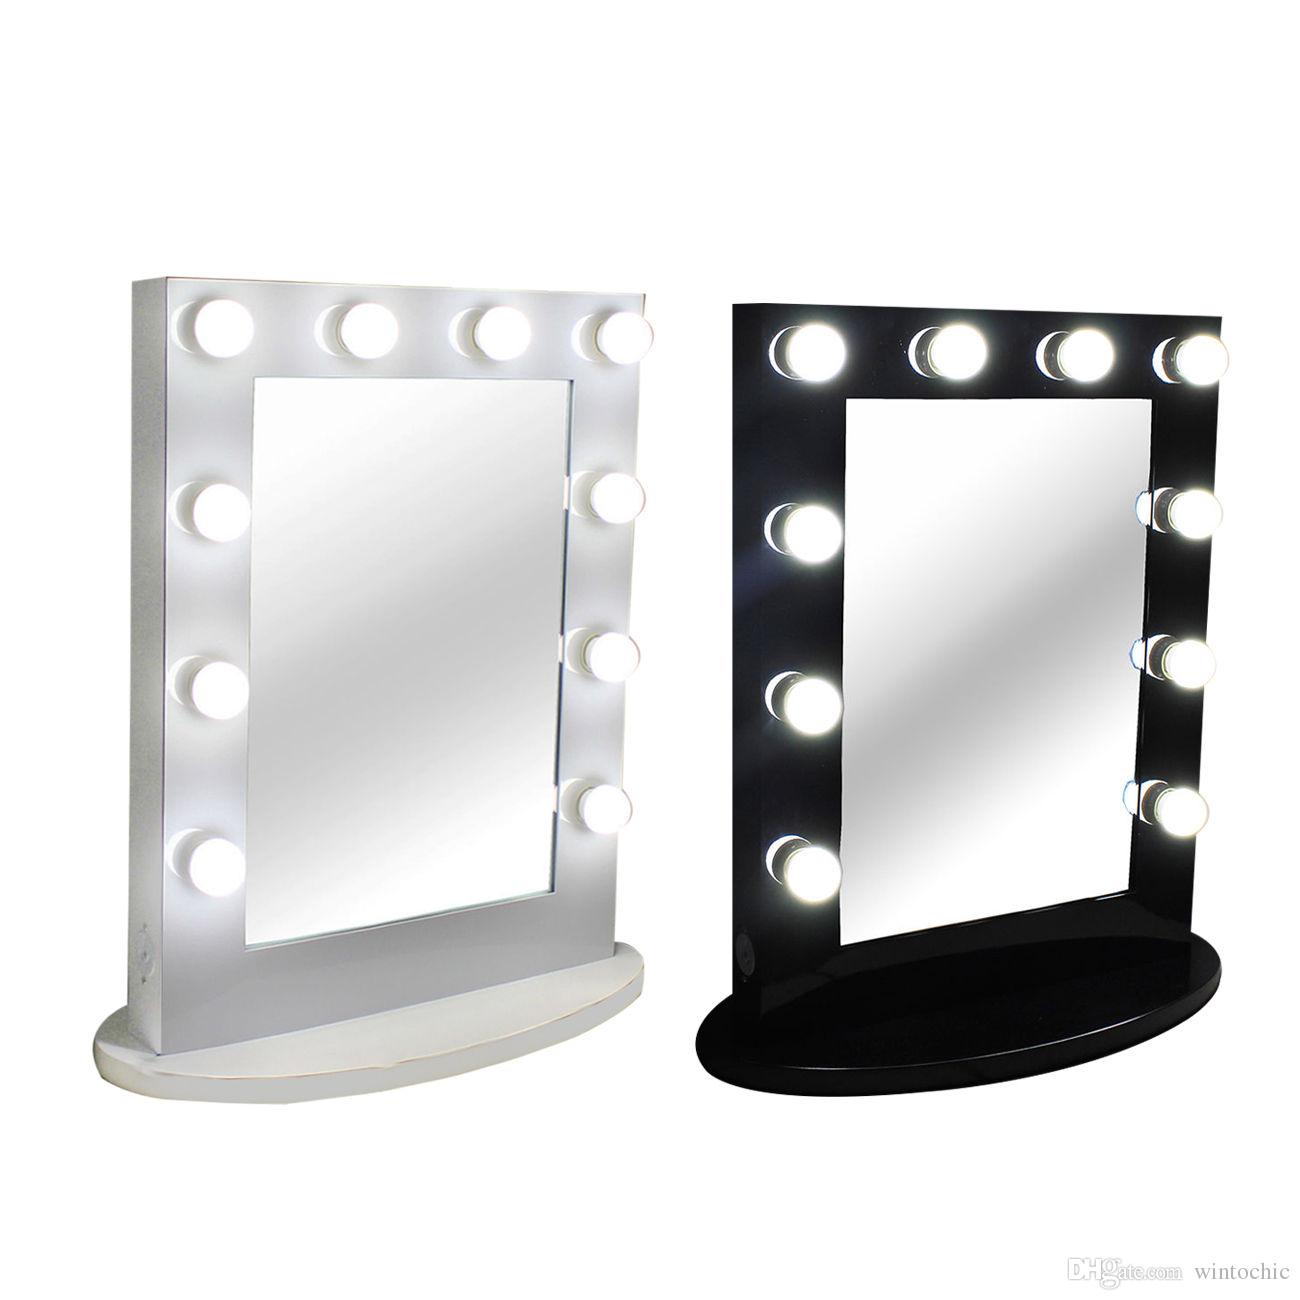 Hollywood tabletops makeup lighted mirror vanity light with dimmer hollywood tabletops makeup lighted mirror vanity light with dimmer aluminum frame stage beauty mirrorfree 12 led bulbs mirrors for bathrooms mirrors with aloadofball Image collections